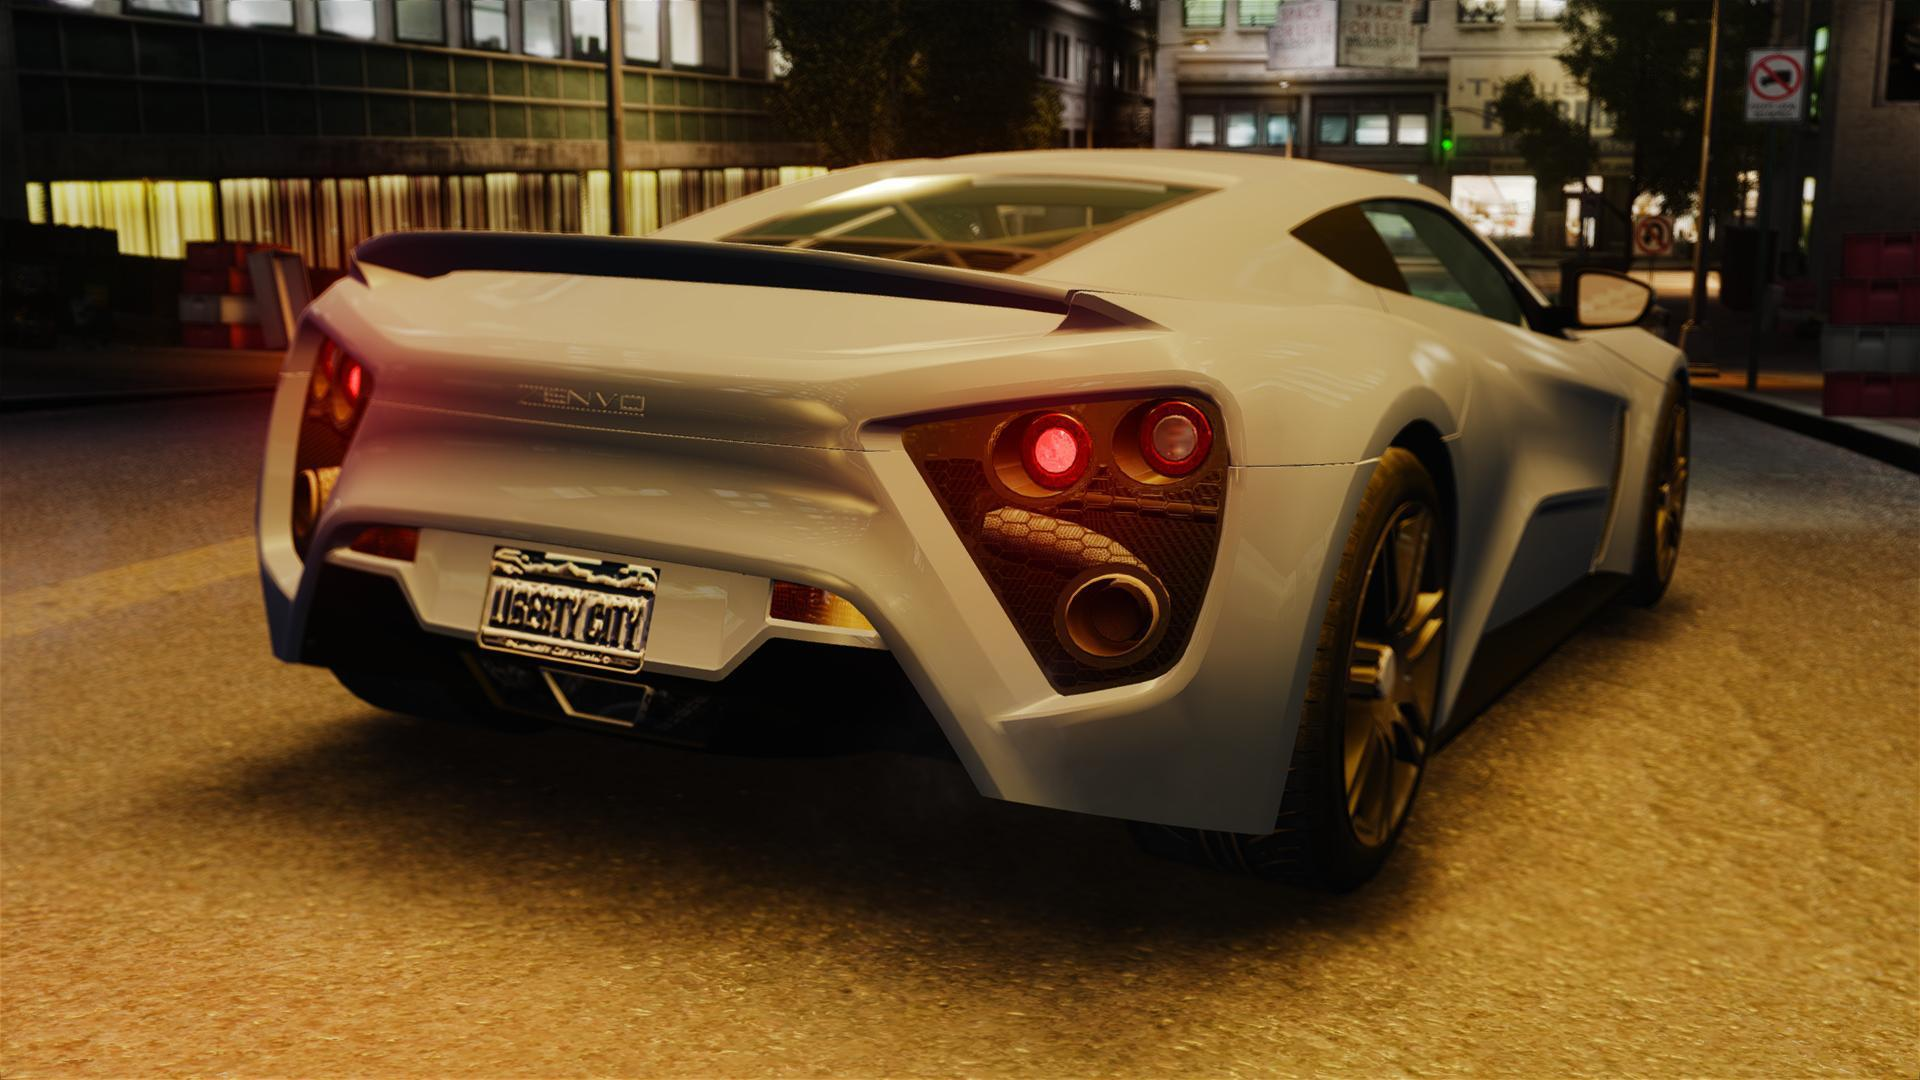 zenvo st1 wallpapers images photos pictures backgrounds